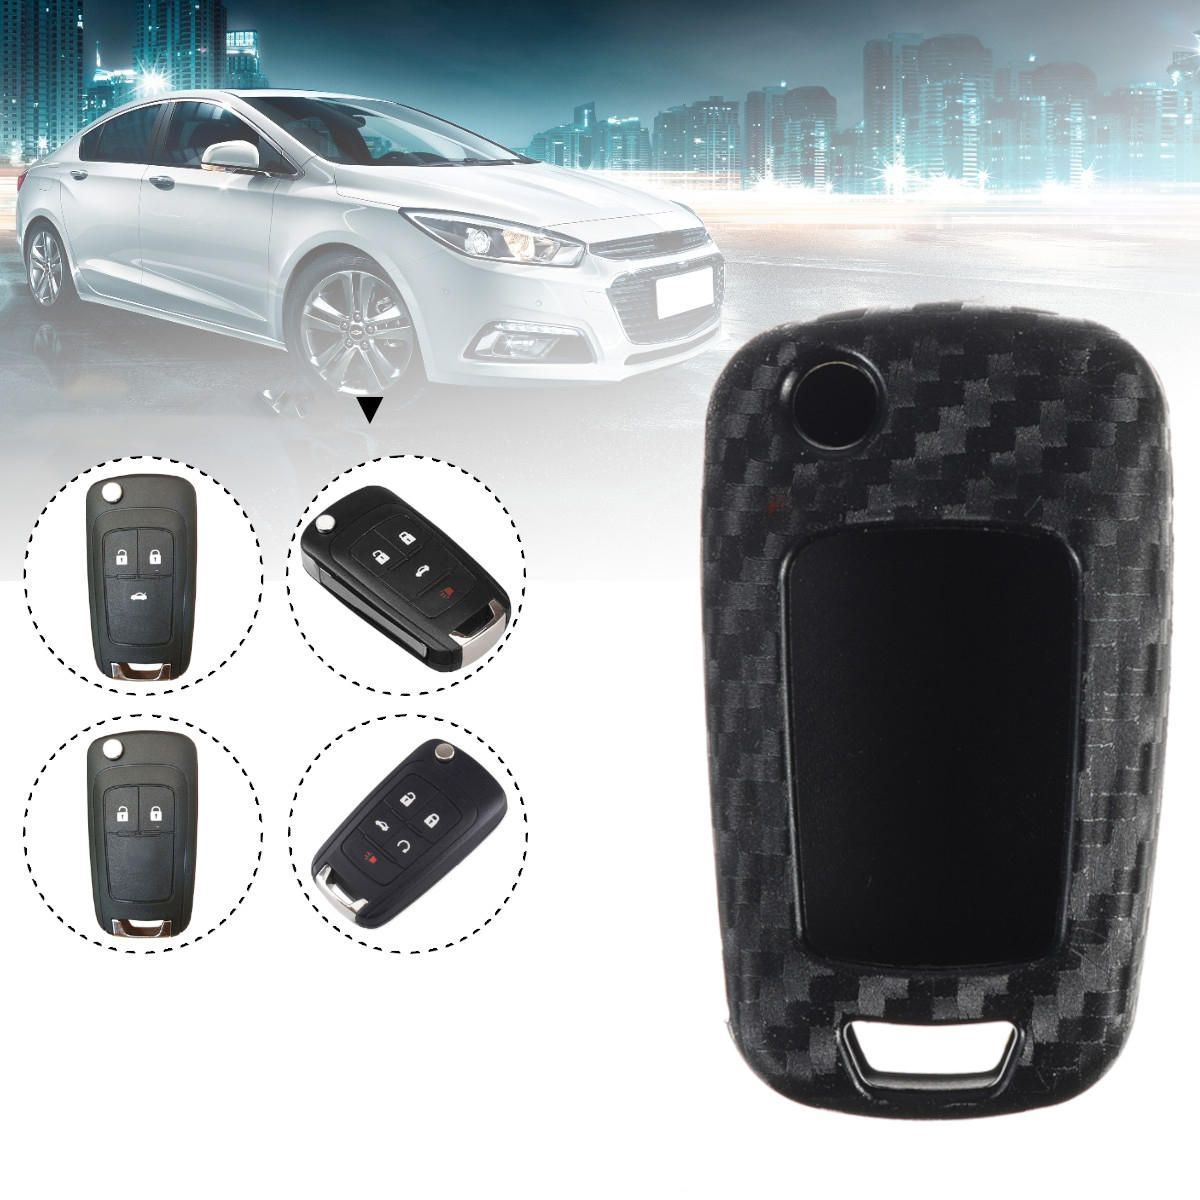 Car Styling Auto Fold Carbon Fiber Grain Shell Protection Cover Case Chevrolet Cruze Aveo For Opel Astra Chevrolet Cruze Chevrolet Laos